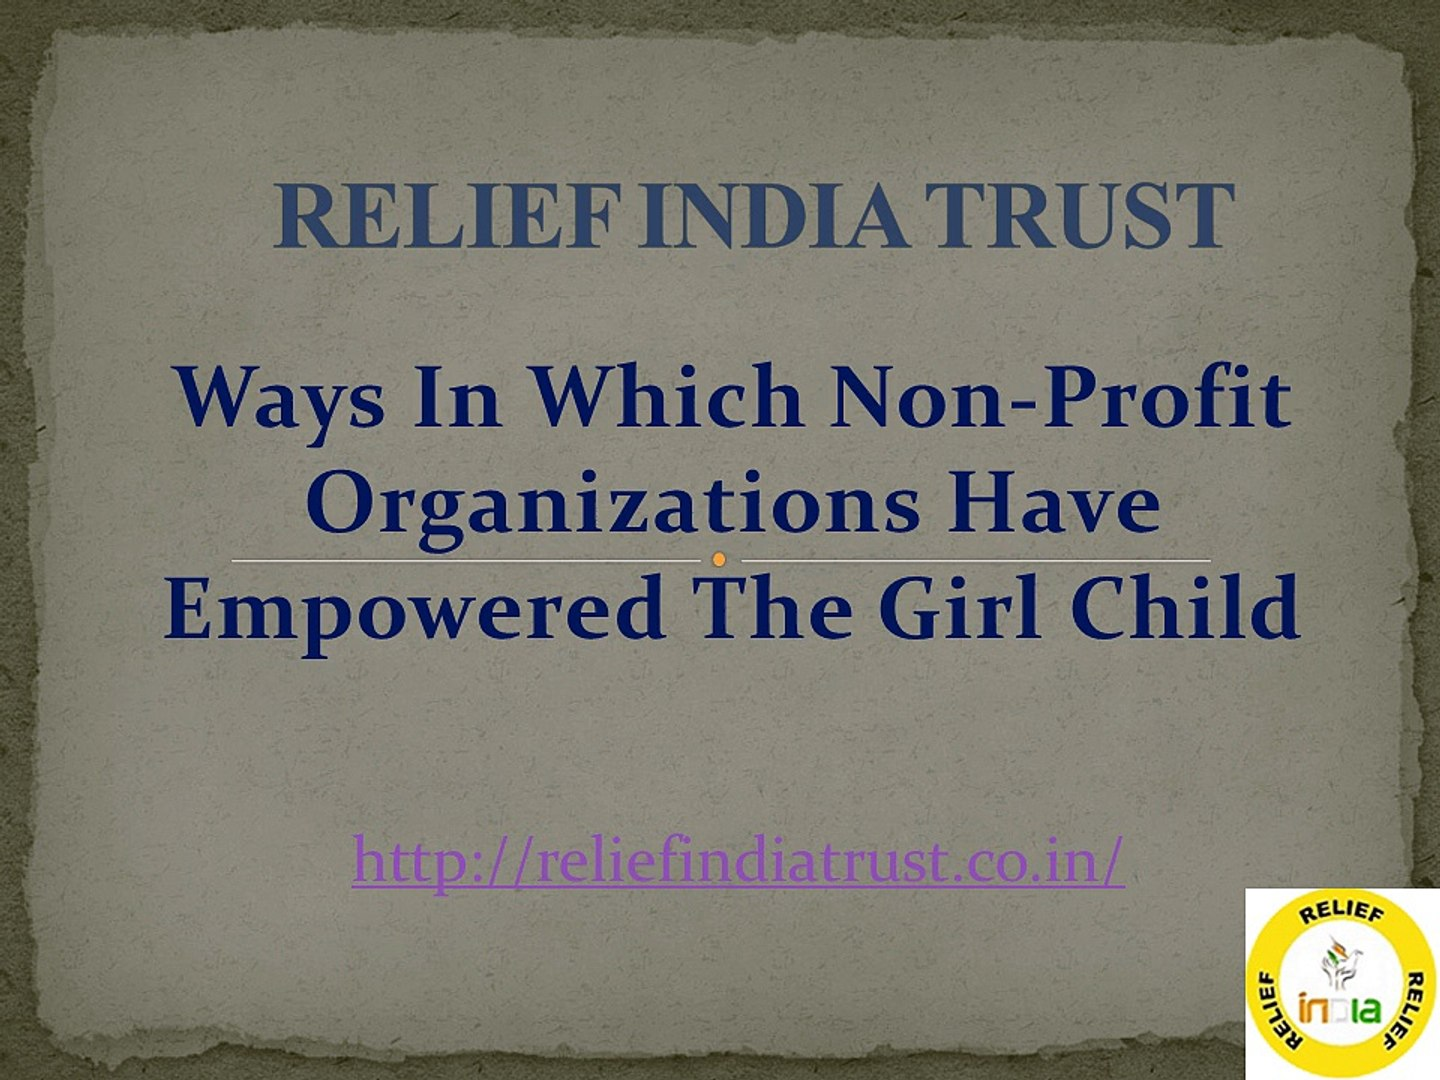 Ways In Which Non-Profit Organizations Have Empowered The Girl Child